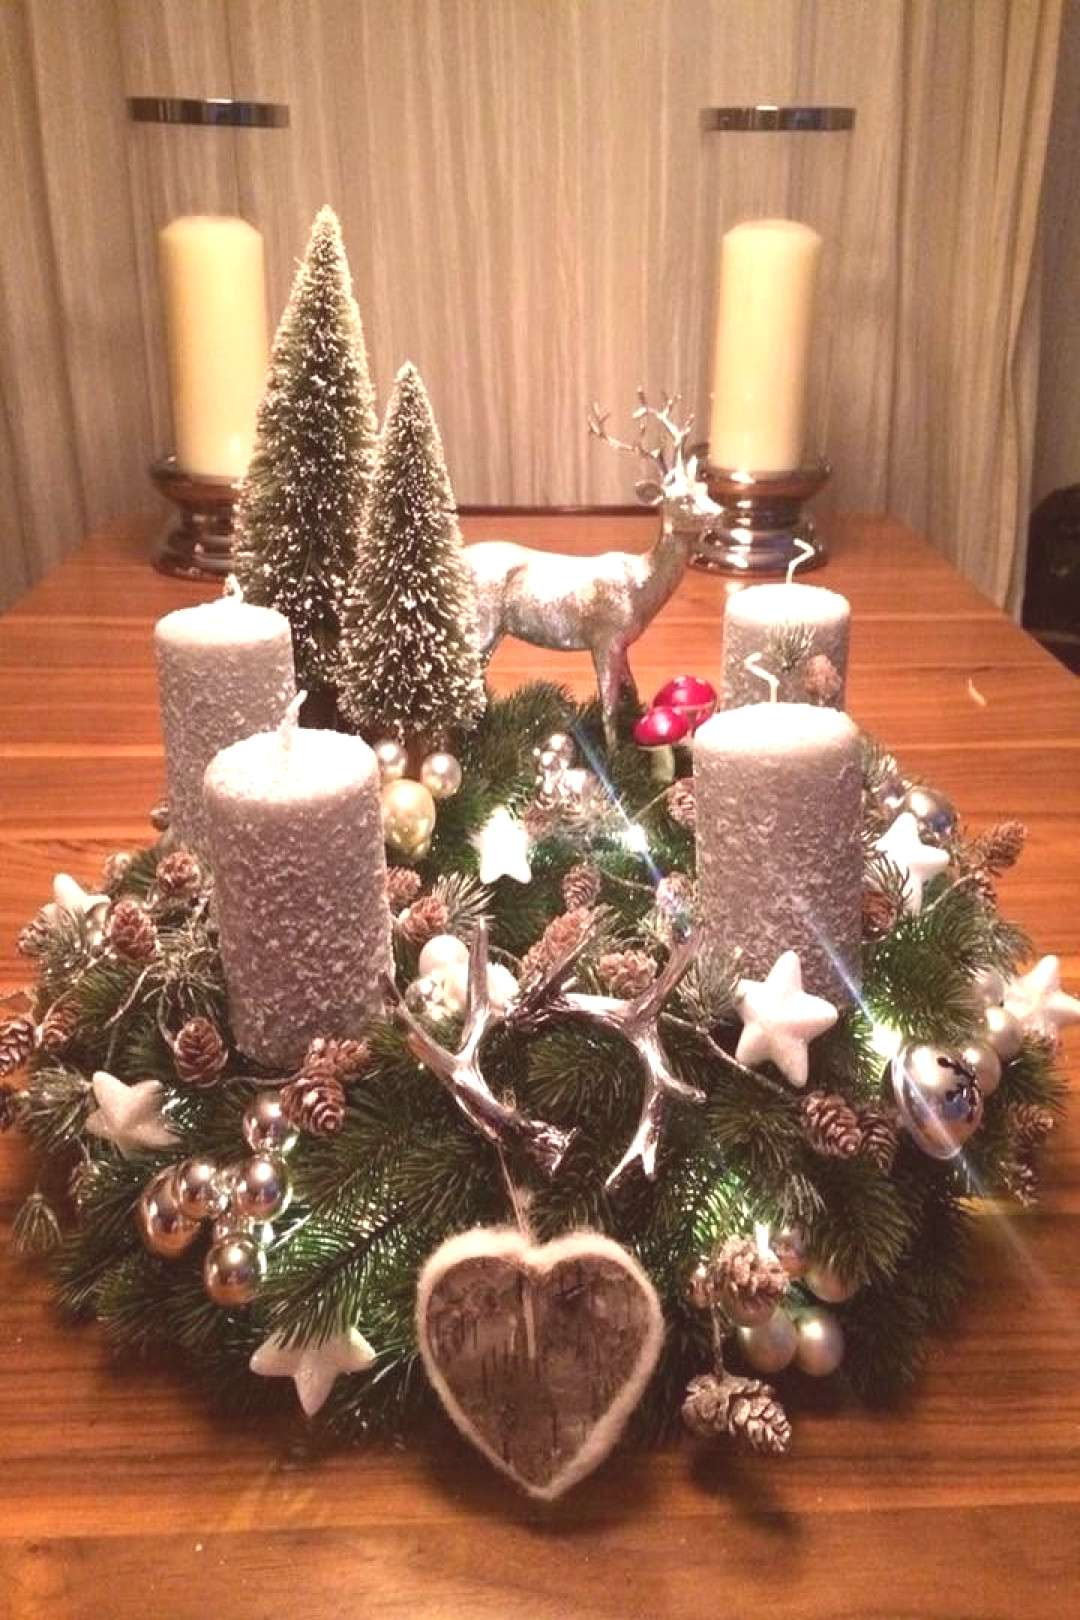 New Photographs christmas scent Concepts 'Ienc in which period once more! This kind of Holiday,